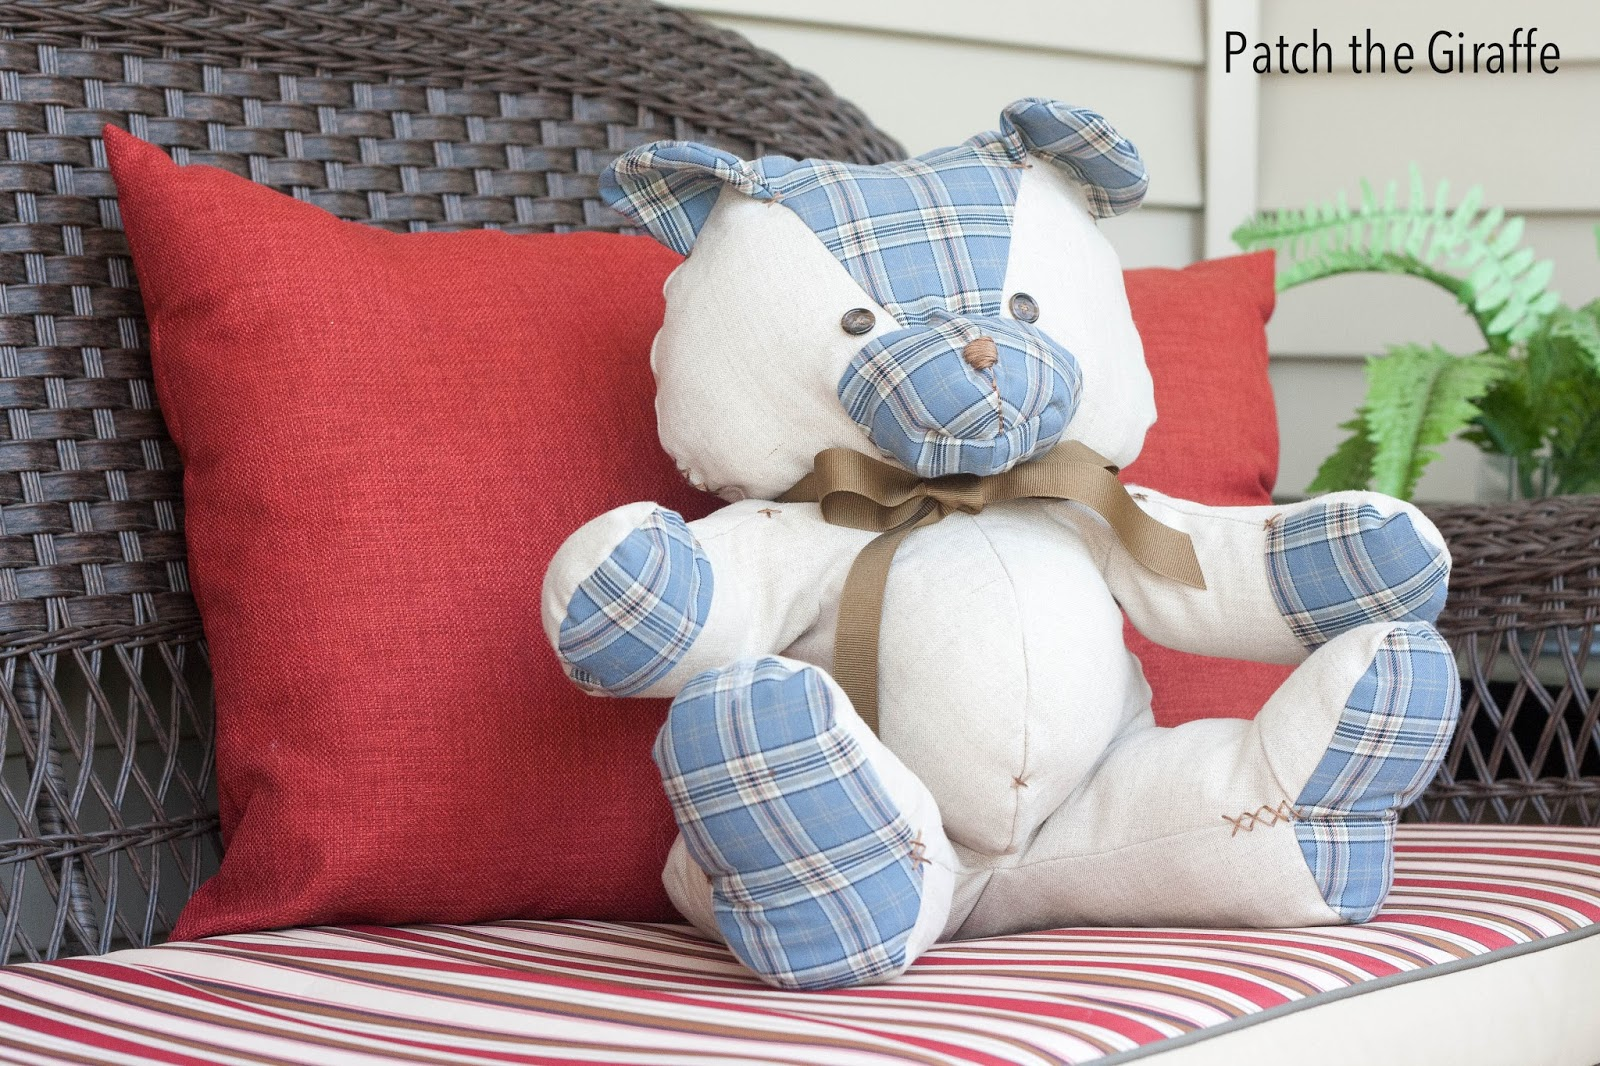 how to make teddy bear at home with cotton